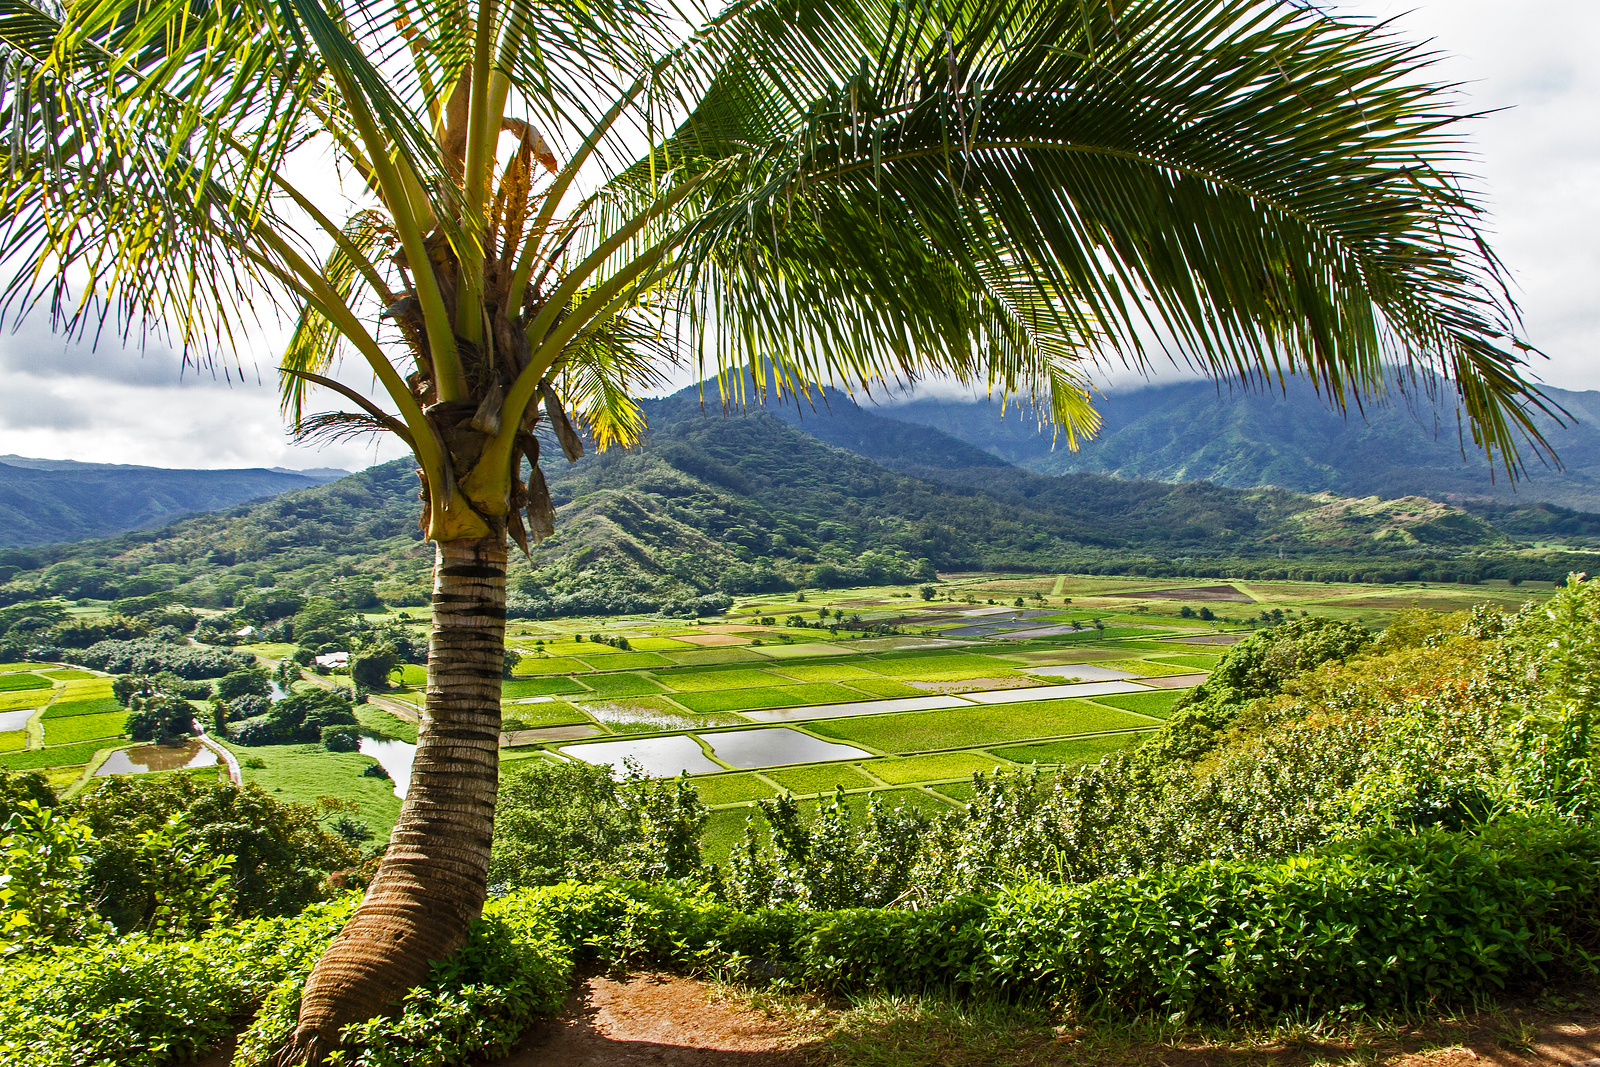 The Hanalei Valley